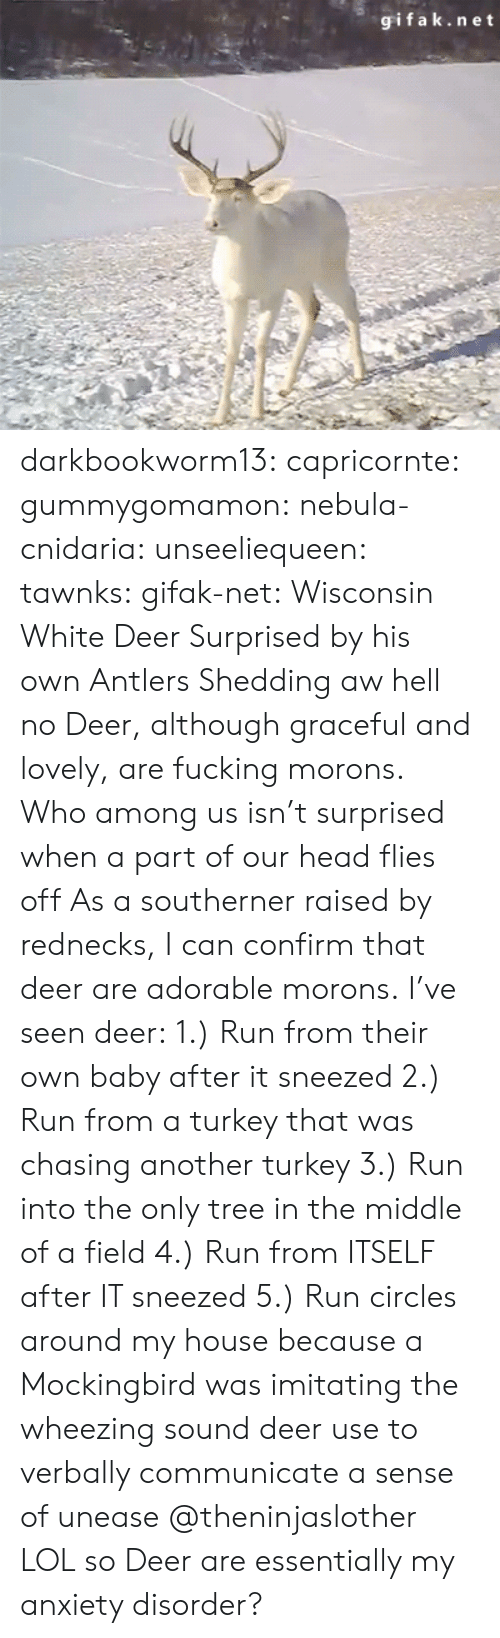 shedding: gifak.net darkbookworm13:  capricornte:  gummygomamon:  nebula-cnidaria:  unseeliequeen:  tawnks:  gifak-net:  Wisconsin White Deer Surprised by his own Antlers Shedding   aw hell no  Deer, although graceful and lovely, are fucking morons.   Who among us isn't surprised when a part of our head flies off   As a southerner raised by rednecks, I can confirm that deer are adorable morons. I've seen deer: 1.) Run from their own baby after it sneezed 2.) Run from a turkey that was chasing another turkey 3.) Run into the only tree in the middle of a field 4.) Run from ITSELF after IT sneezed 5.) Run circles around my house because a Mockingbird was imitating the  wheezing sound deer use to verbally communicate a sense of unease   @theninjaslother  LOL so Deer are essentially my anxiety disorder?